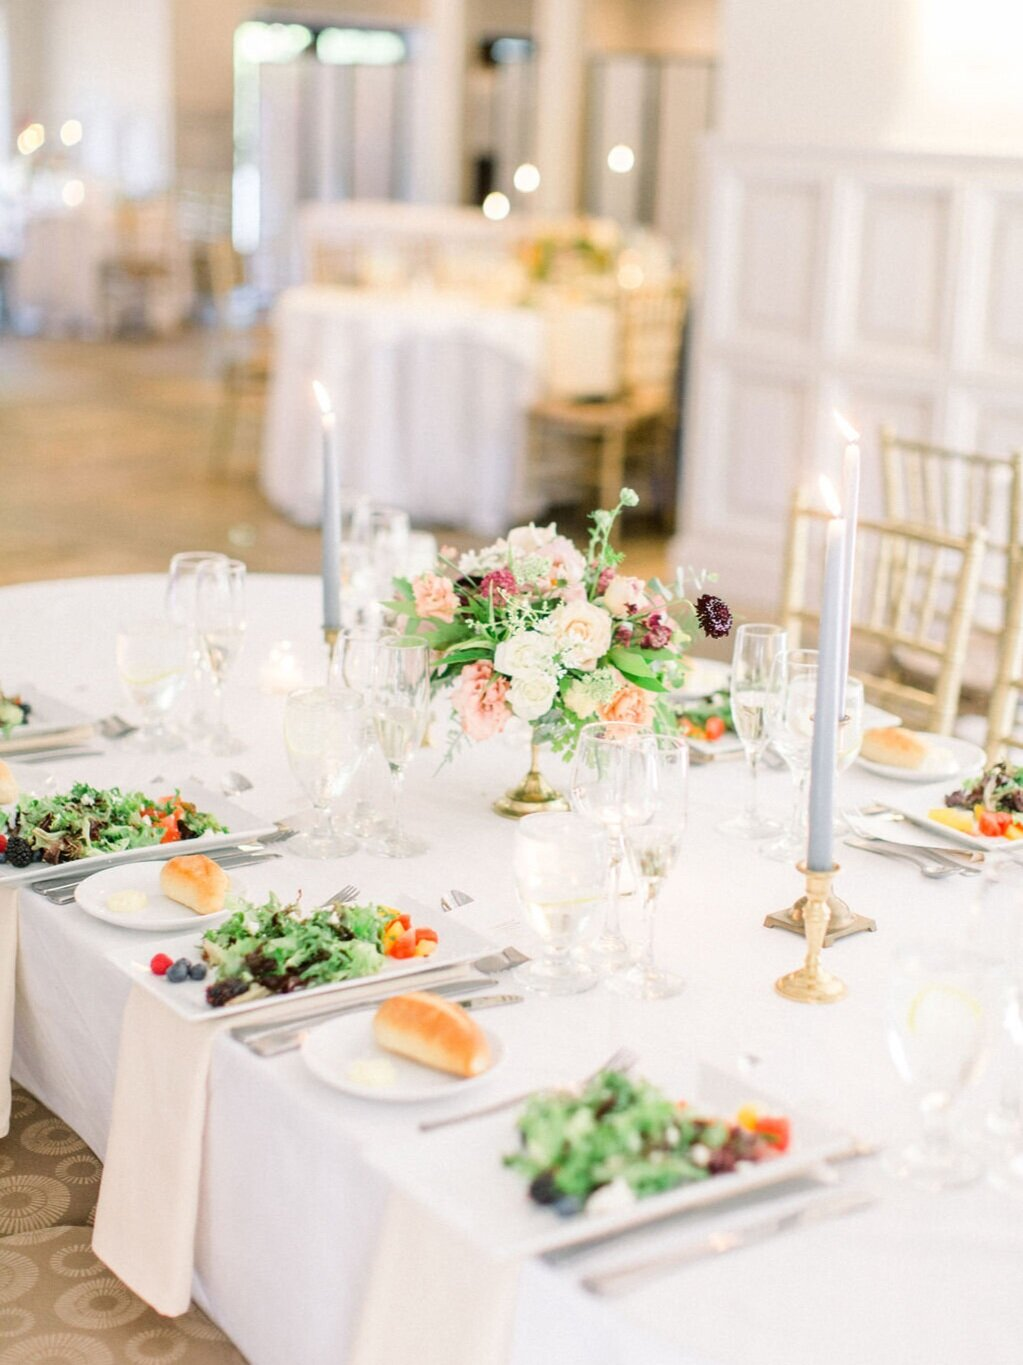 Our Mission - Pridmore Design is passionate about creating stunning events with floral design. Through our intentional processes, we create personalized floral design plans to fit each client's vision and needs, no matter what they might be.